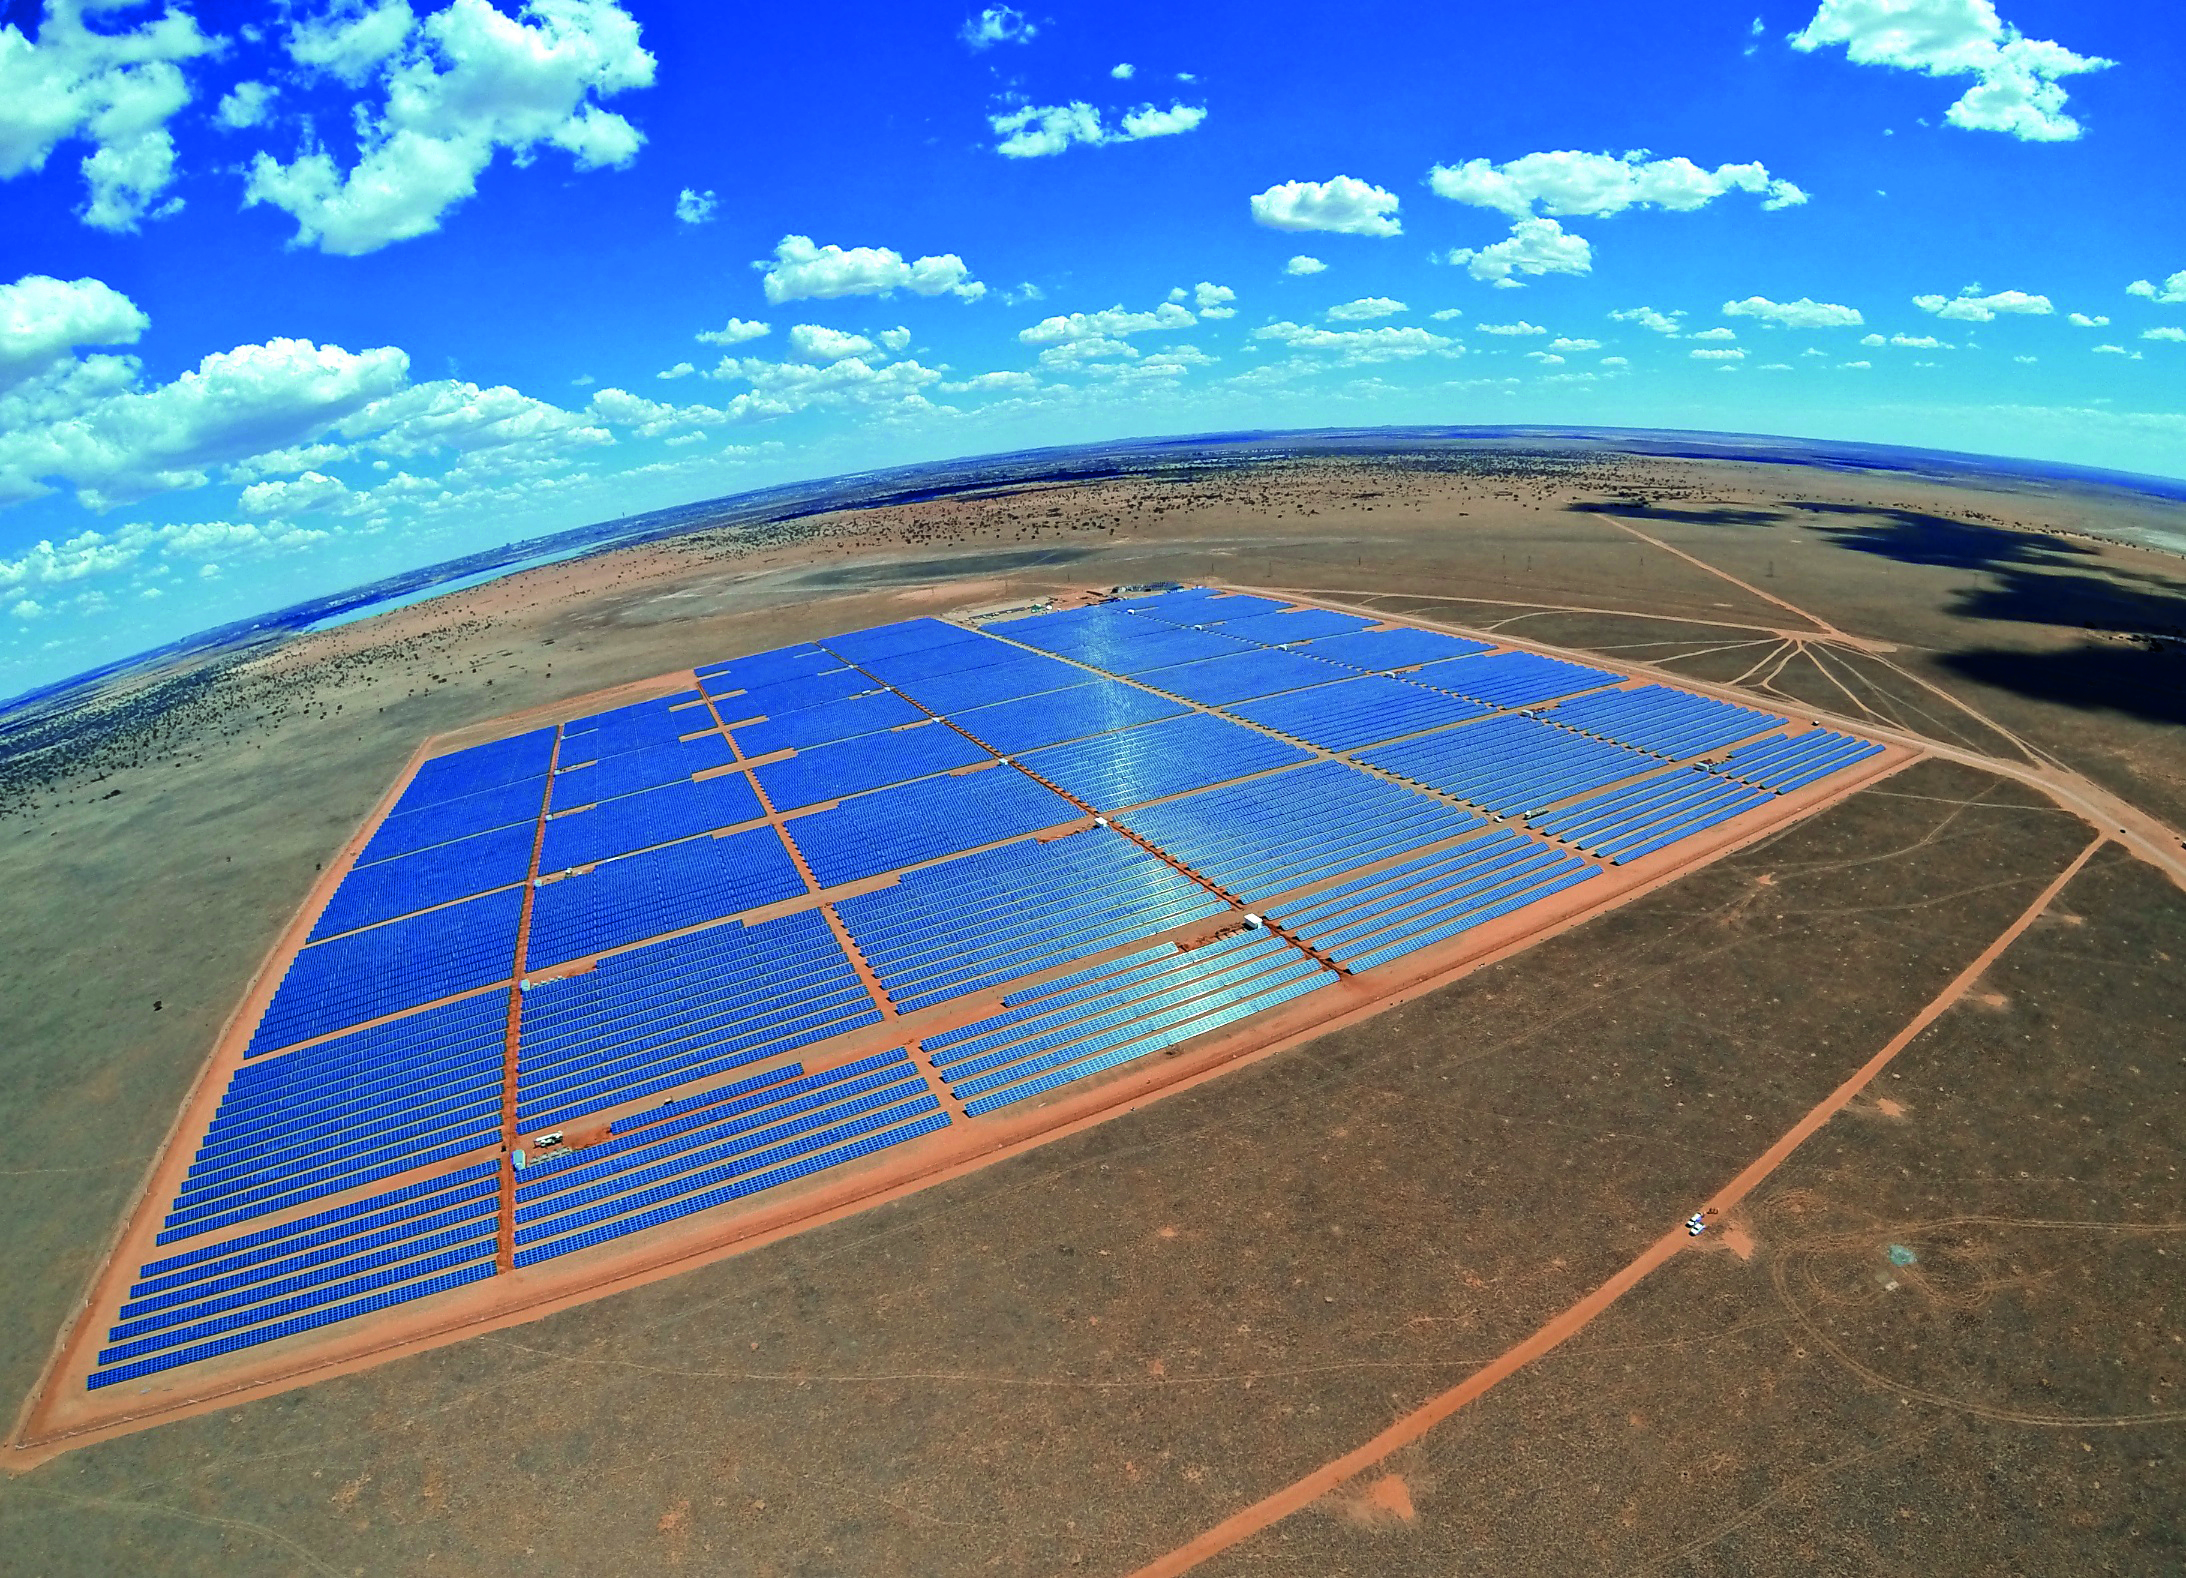 Image: Droogfontein Solar Power Facility